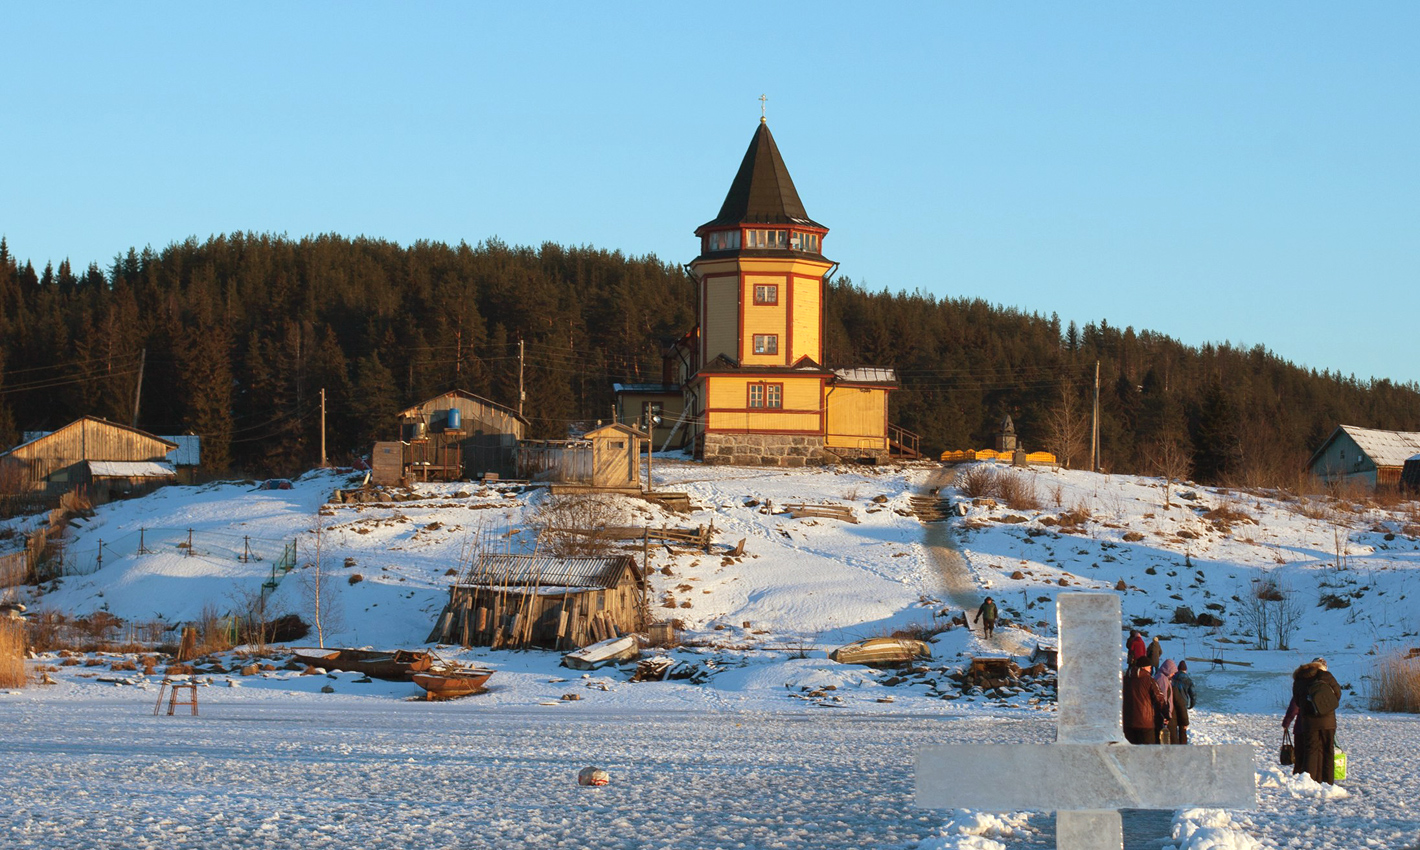 January 19, 2015. St.Nicolas church in Rantue